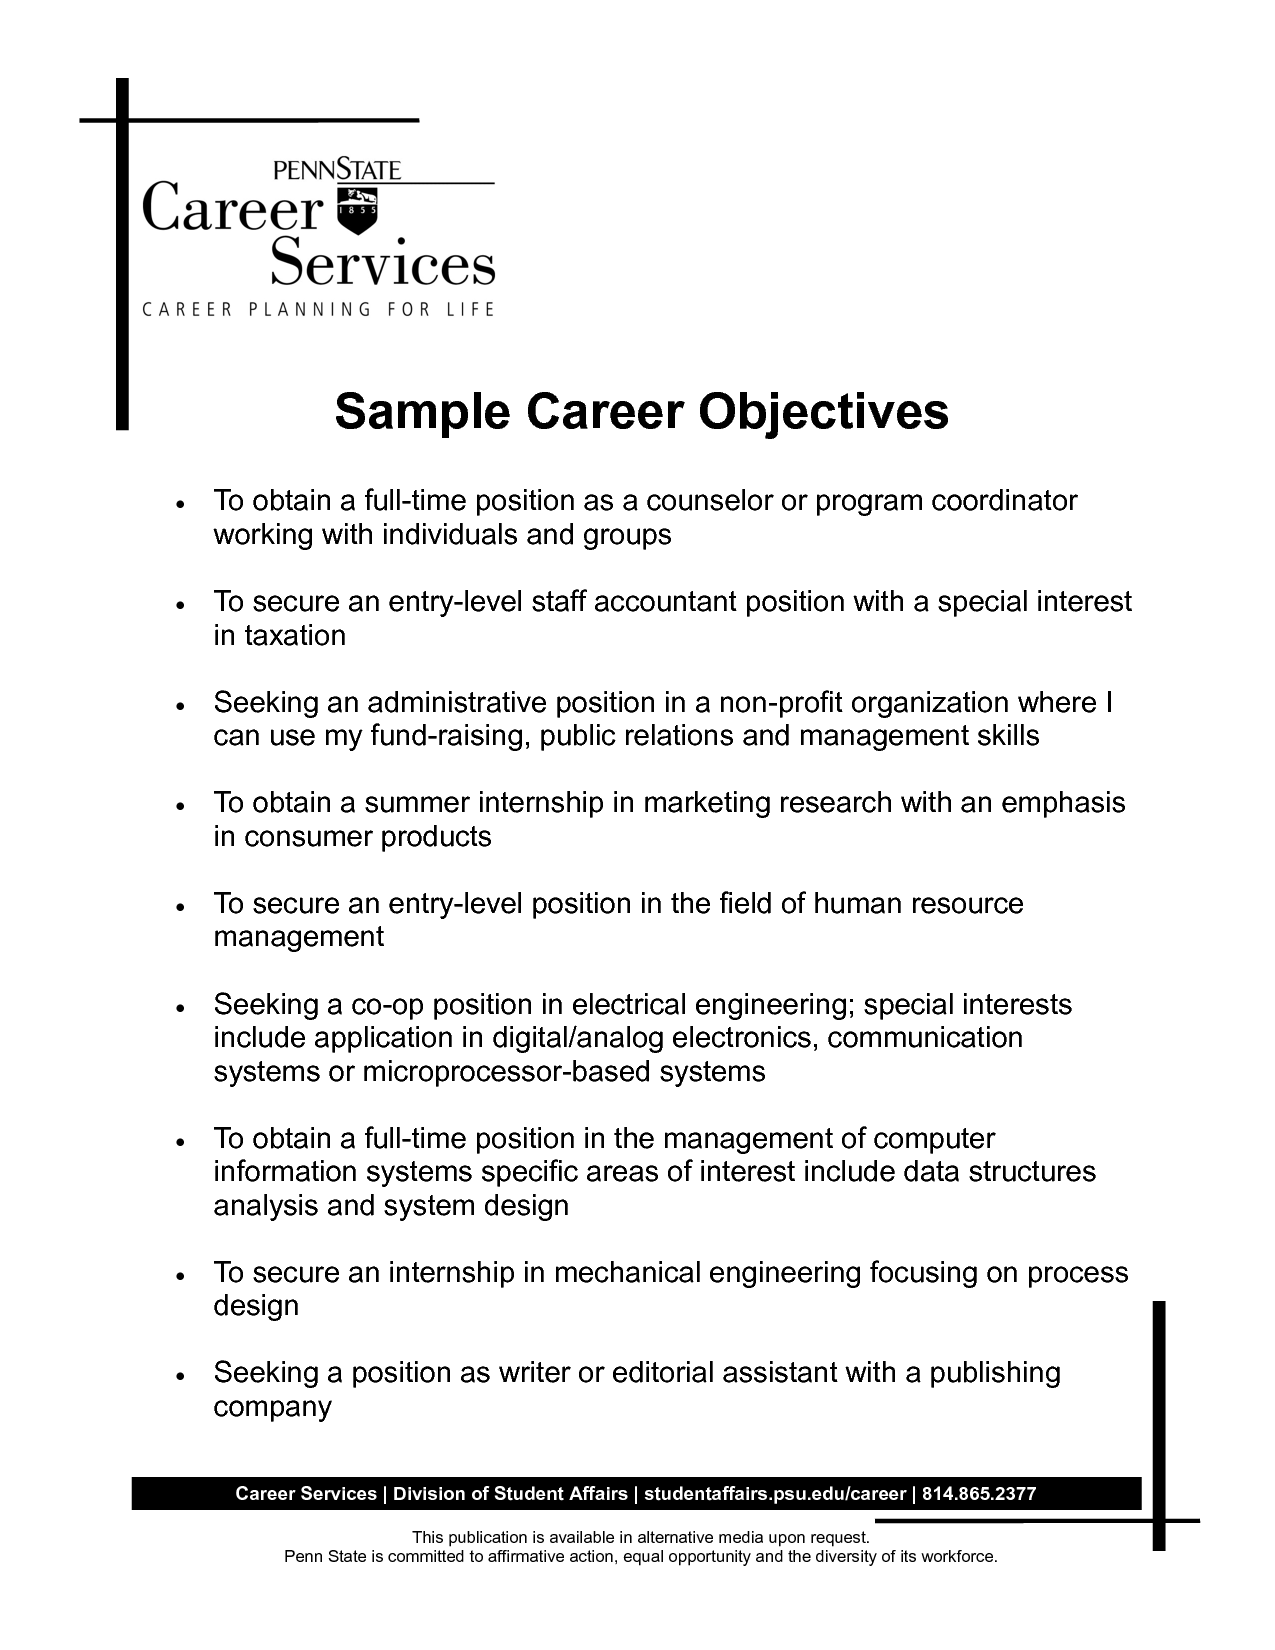 A Good Resume Objective Career Objective Resume Accountant  Httpwwwresumecareer